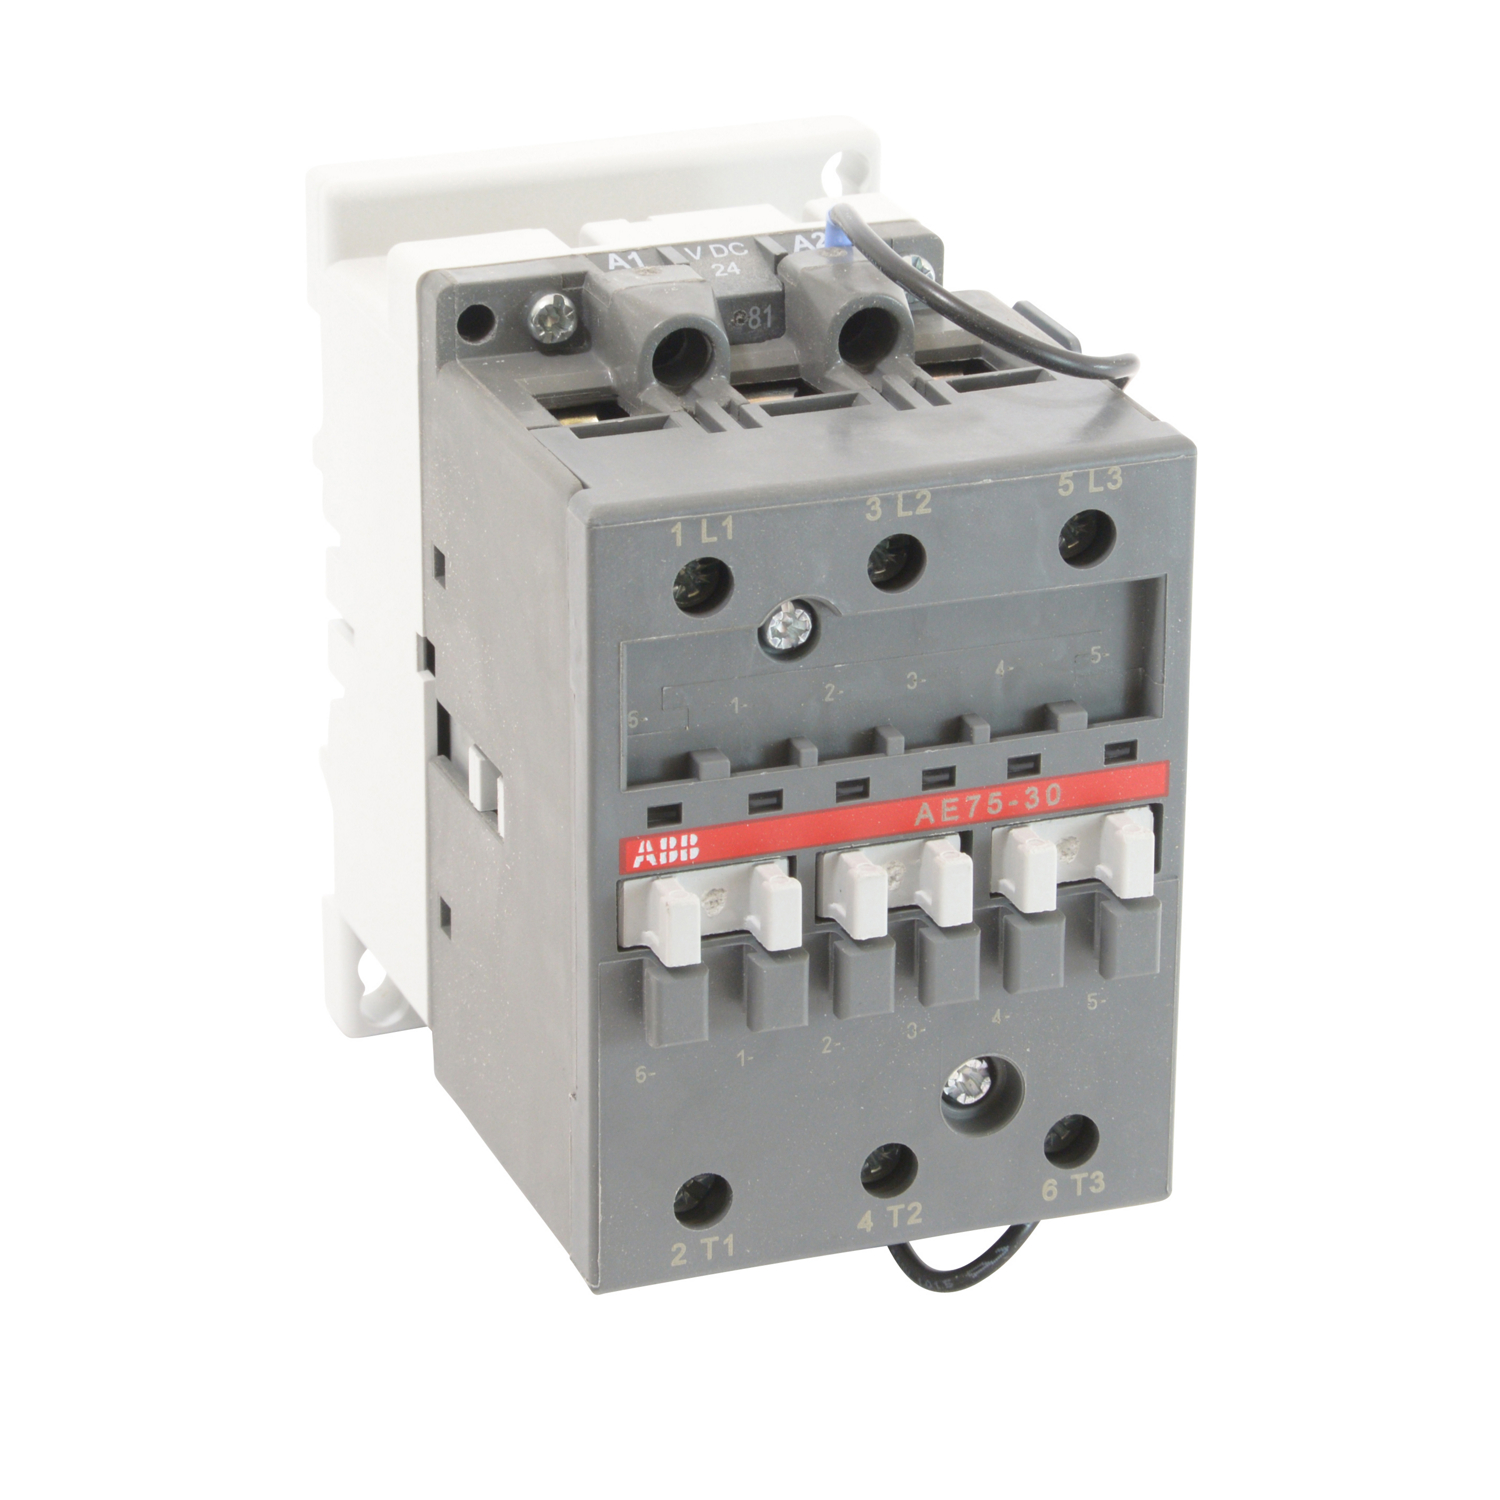 ABB AE75-30-00-81 Line Contactor